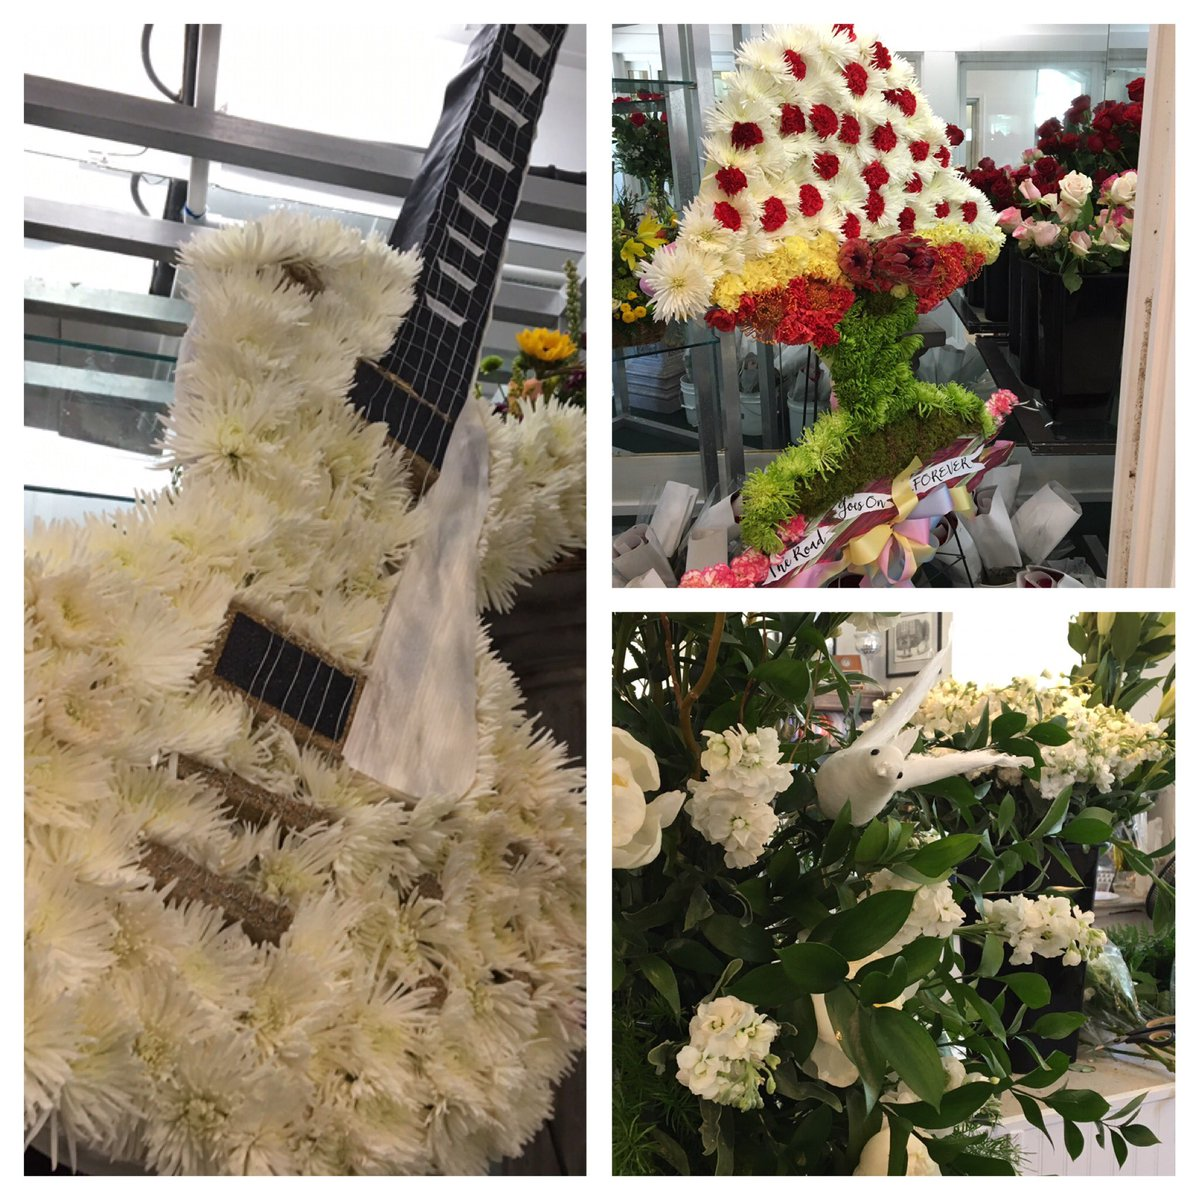 Check out these arrangements at a macon flower shop from lynyrd check out these arrangements at a macon flower shop from lynyrd skynyrd for gregg allmans funeral dhlflorist Image collections